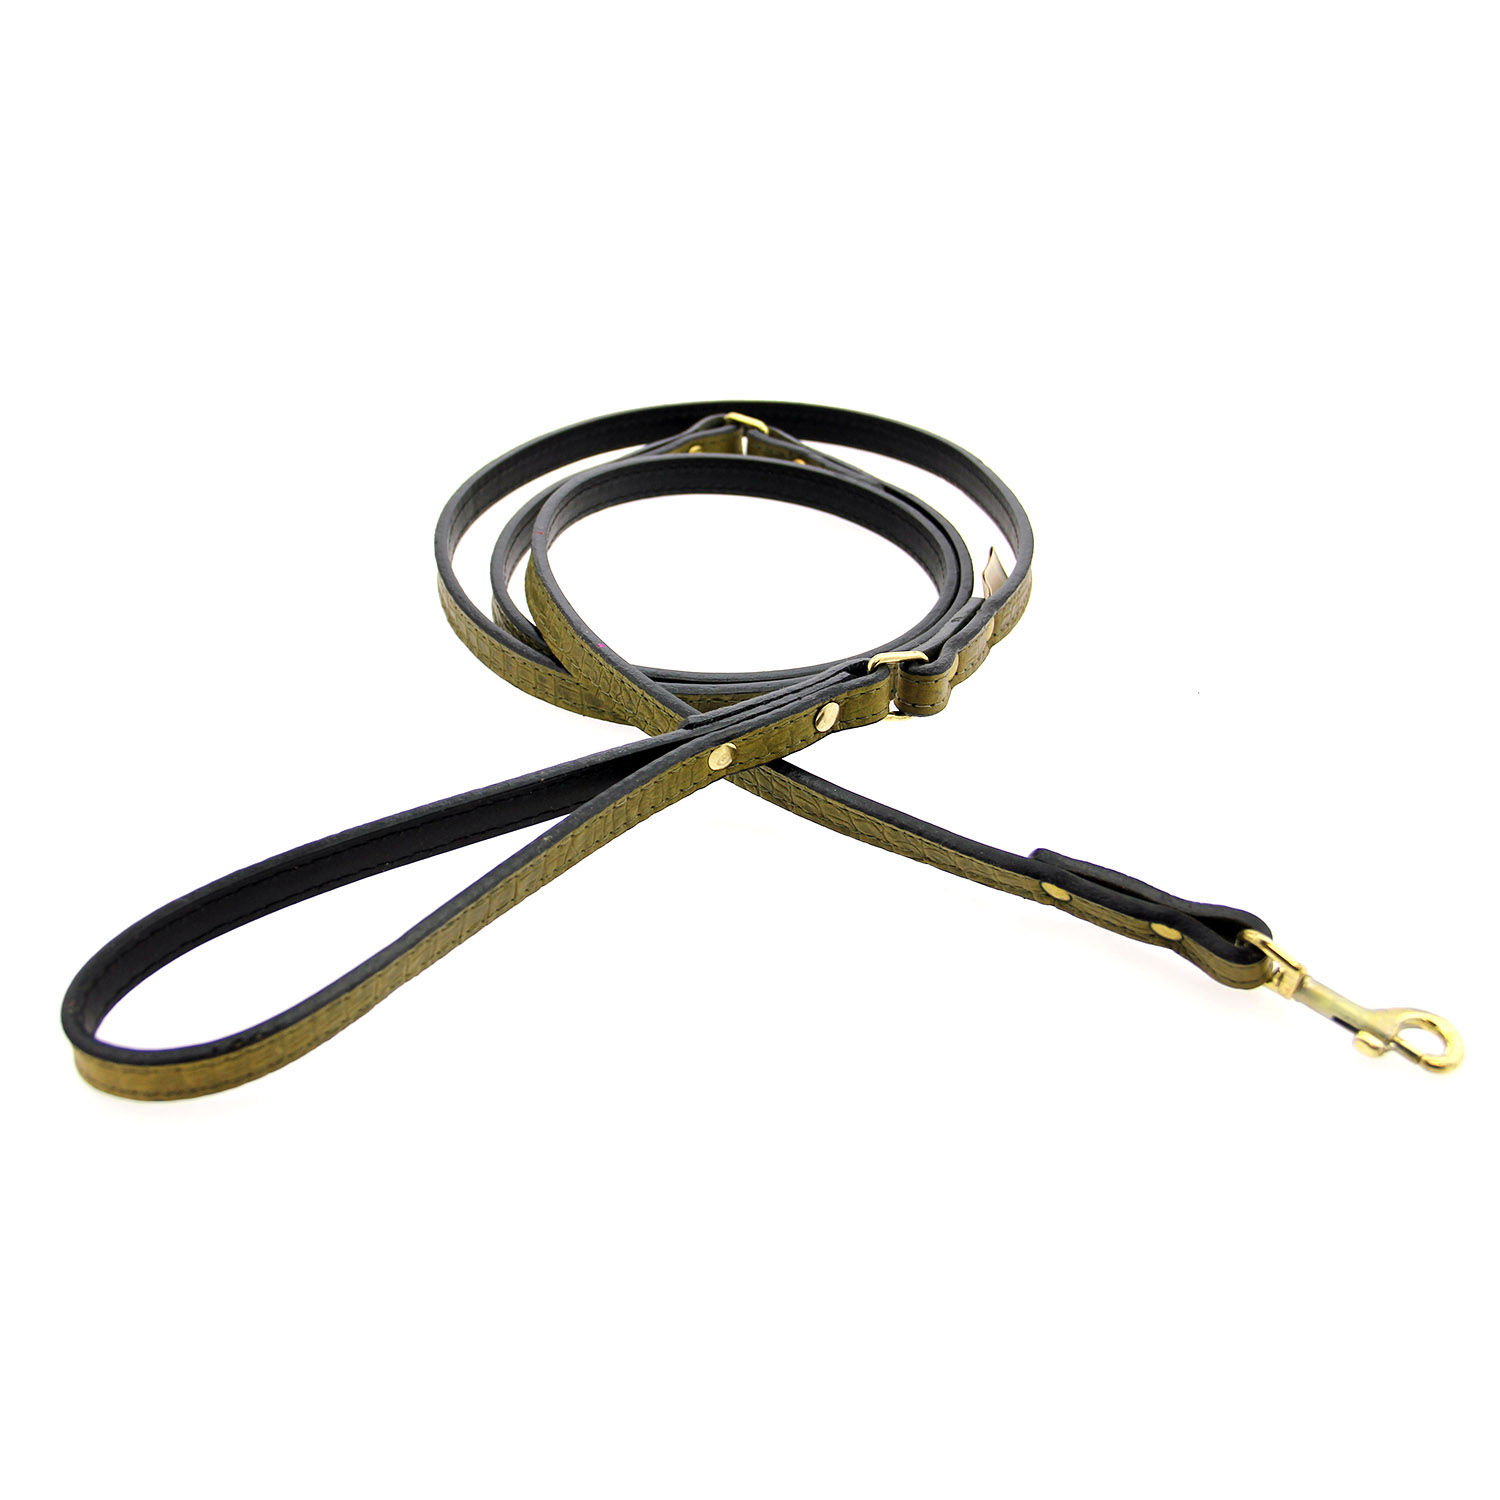 Savannah Leather Dog Leash by Auburn Leather - Lizard Olive